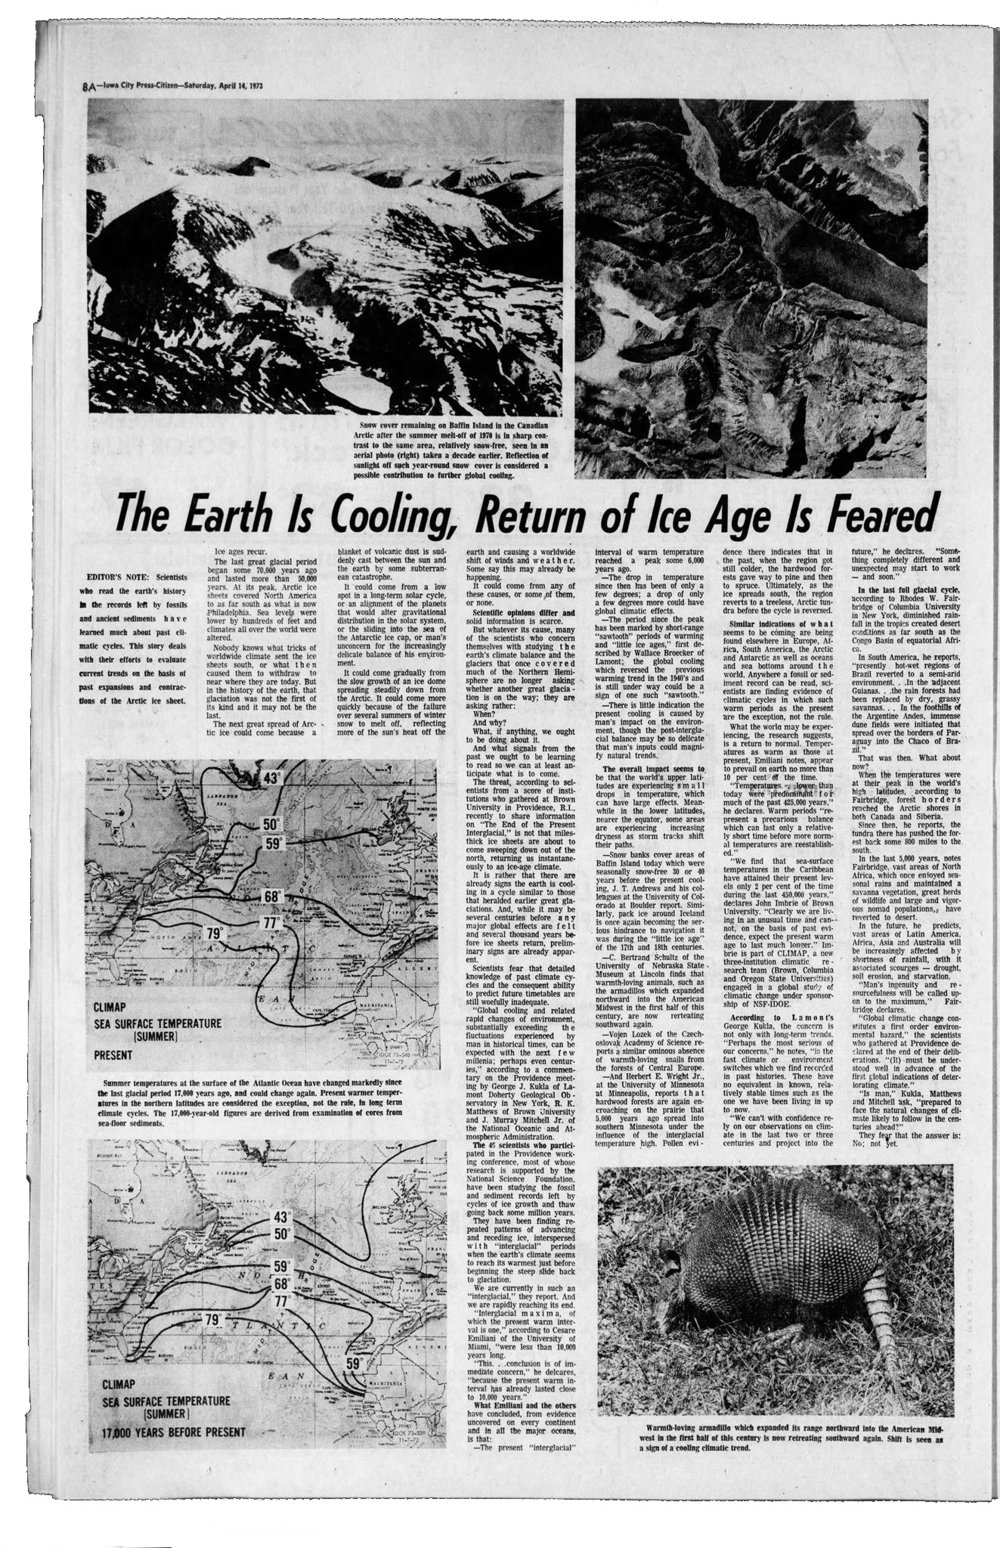 Iowa City Press Citizen--April 14, 1973